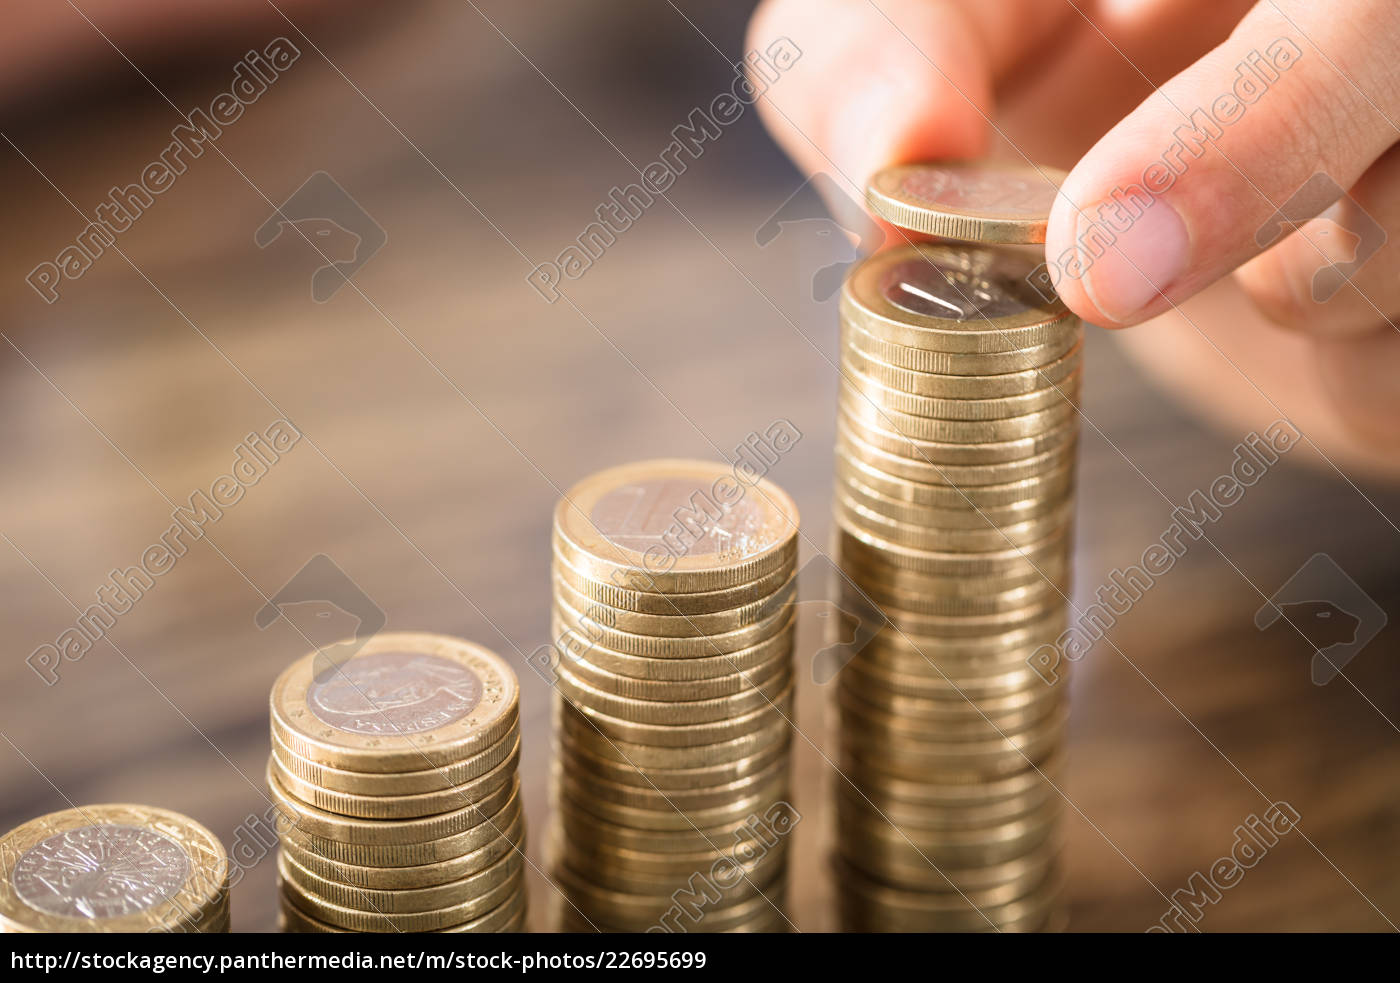 person, placing, coin, over, the, coins - 22695699